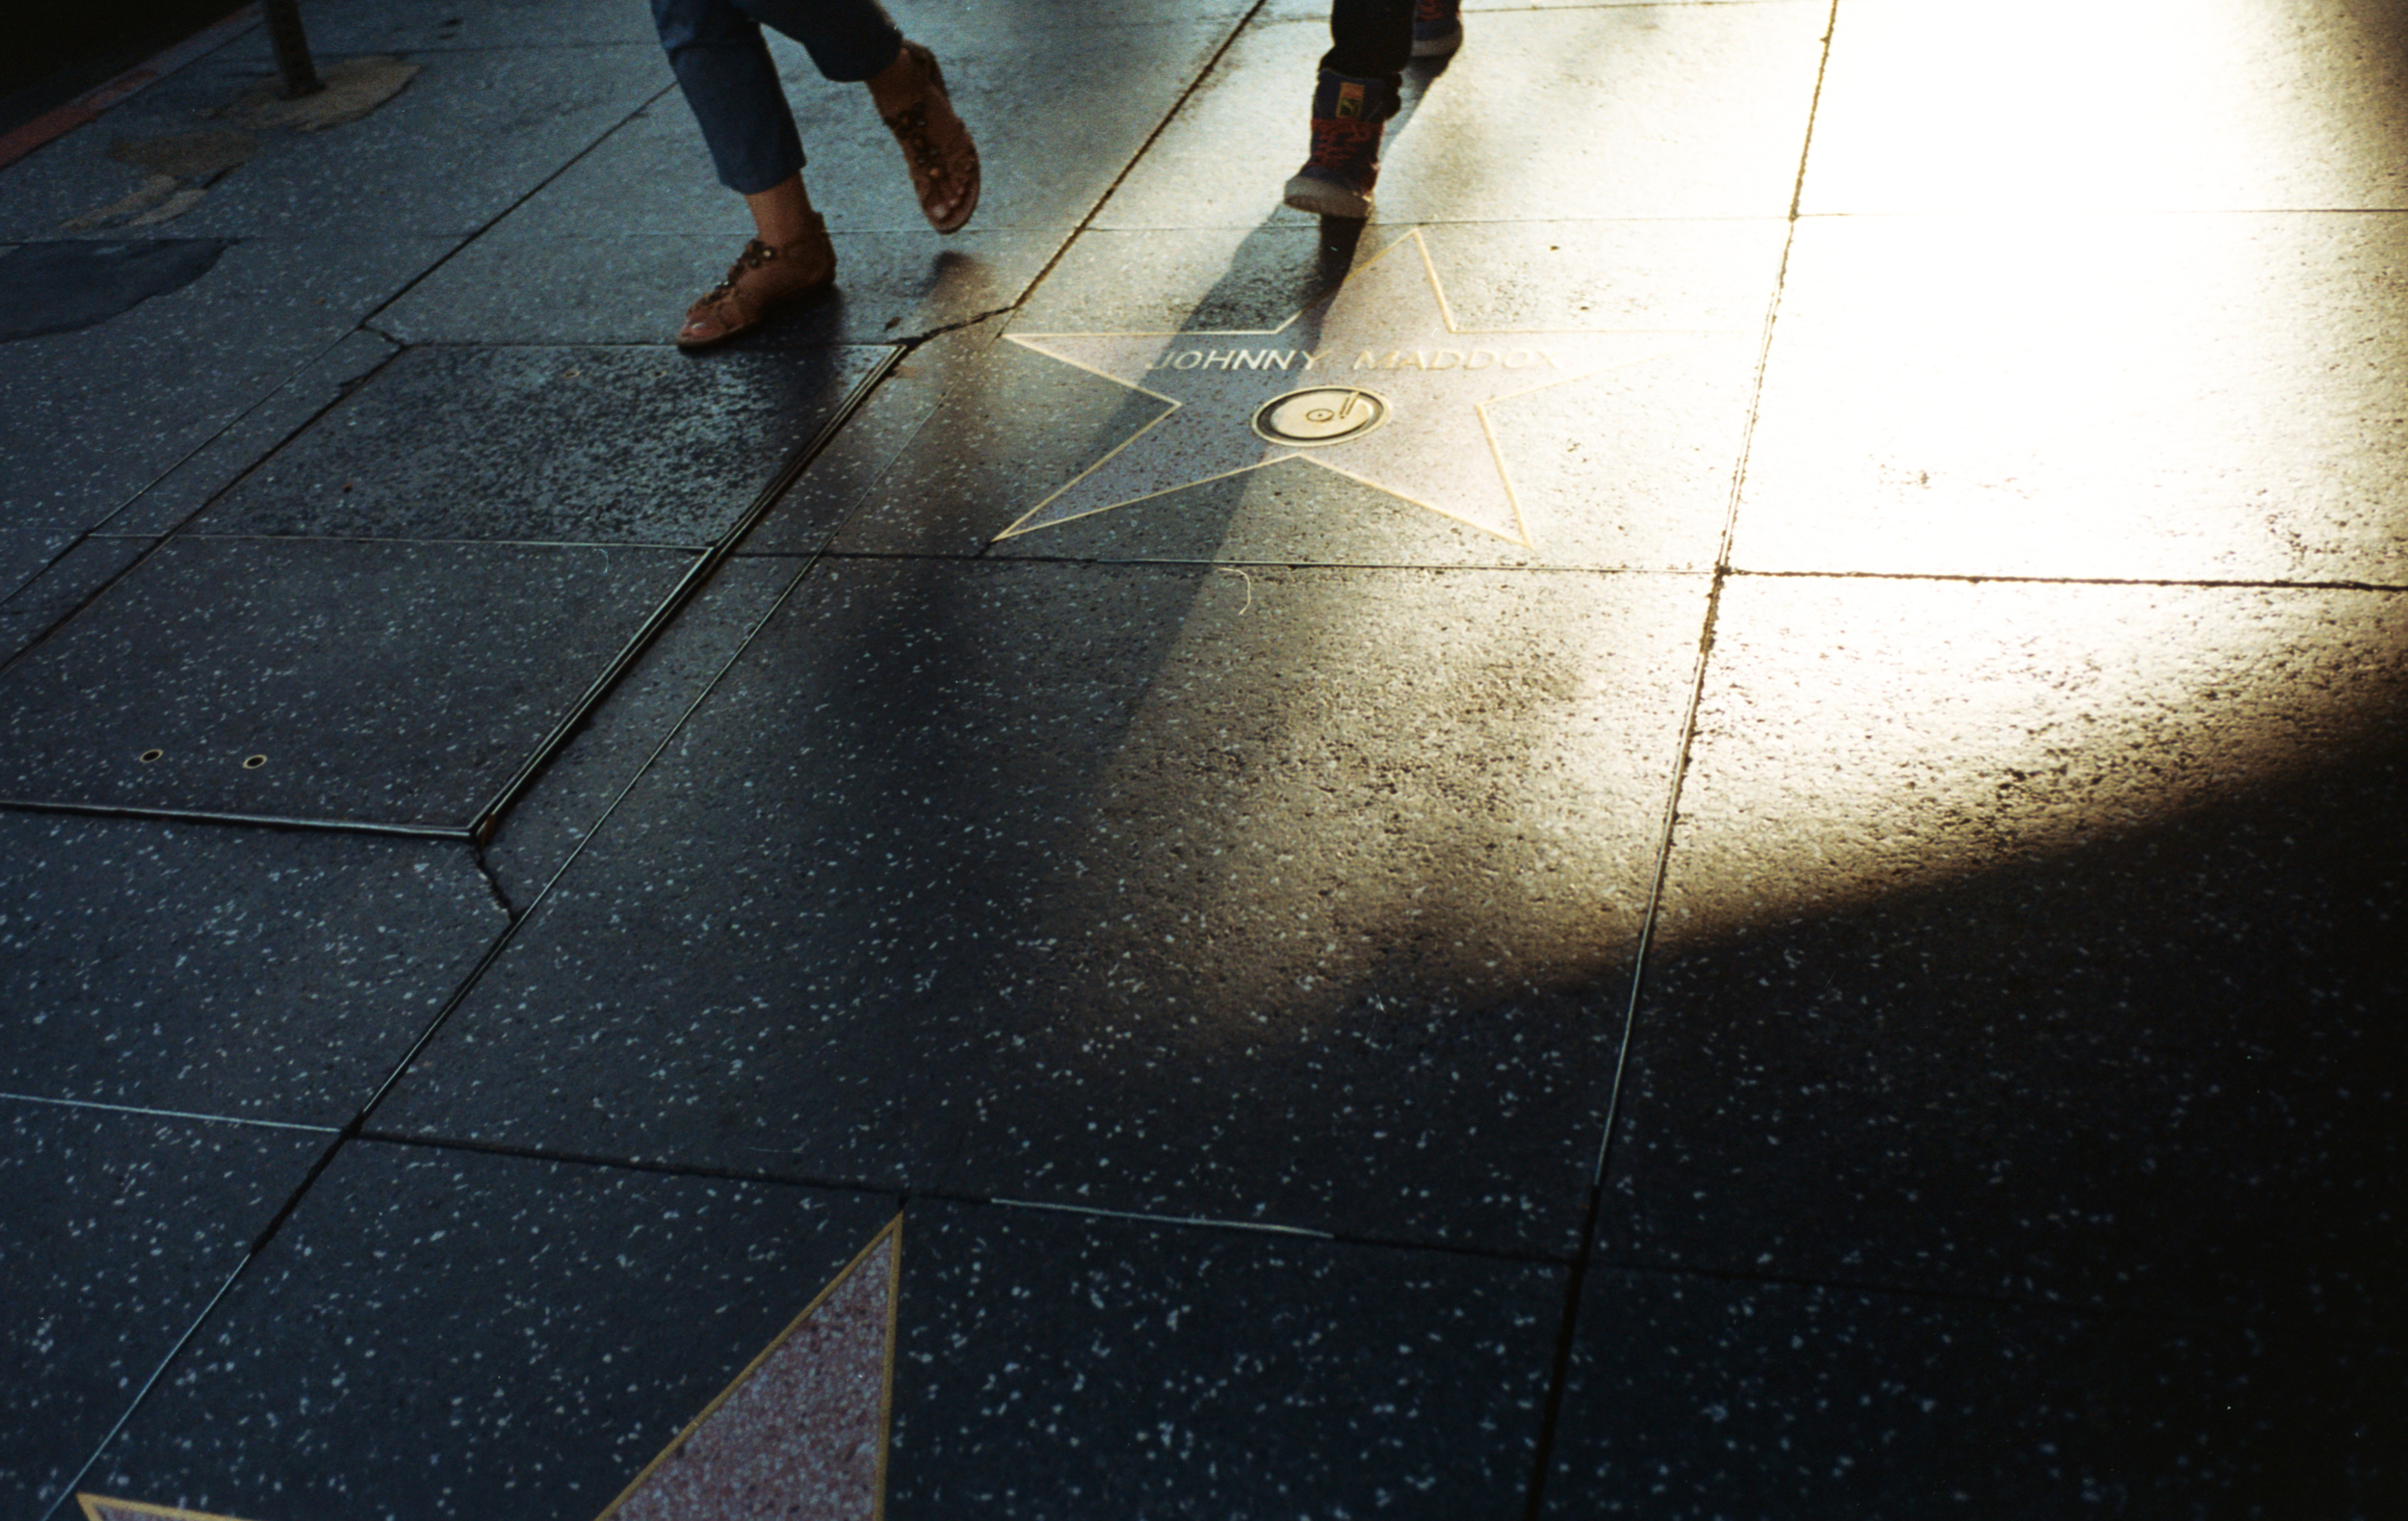 Film_Leica_cali (54 of 85).jpg